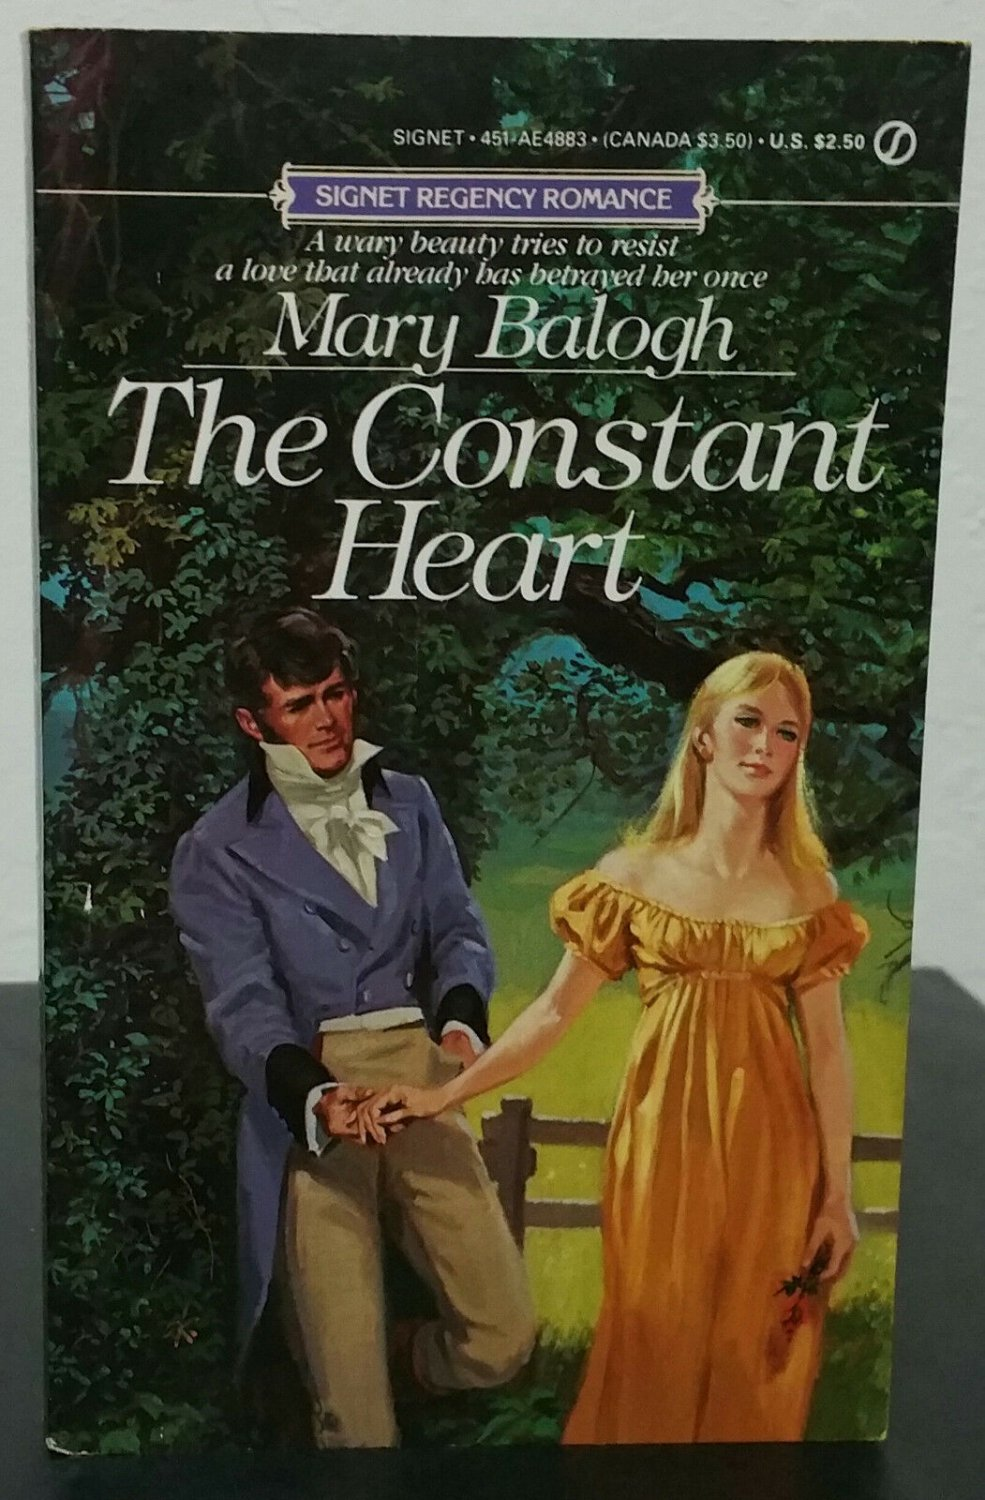 The Constant Heart by Mary Balogh - 1st Pb. Edn.